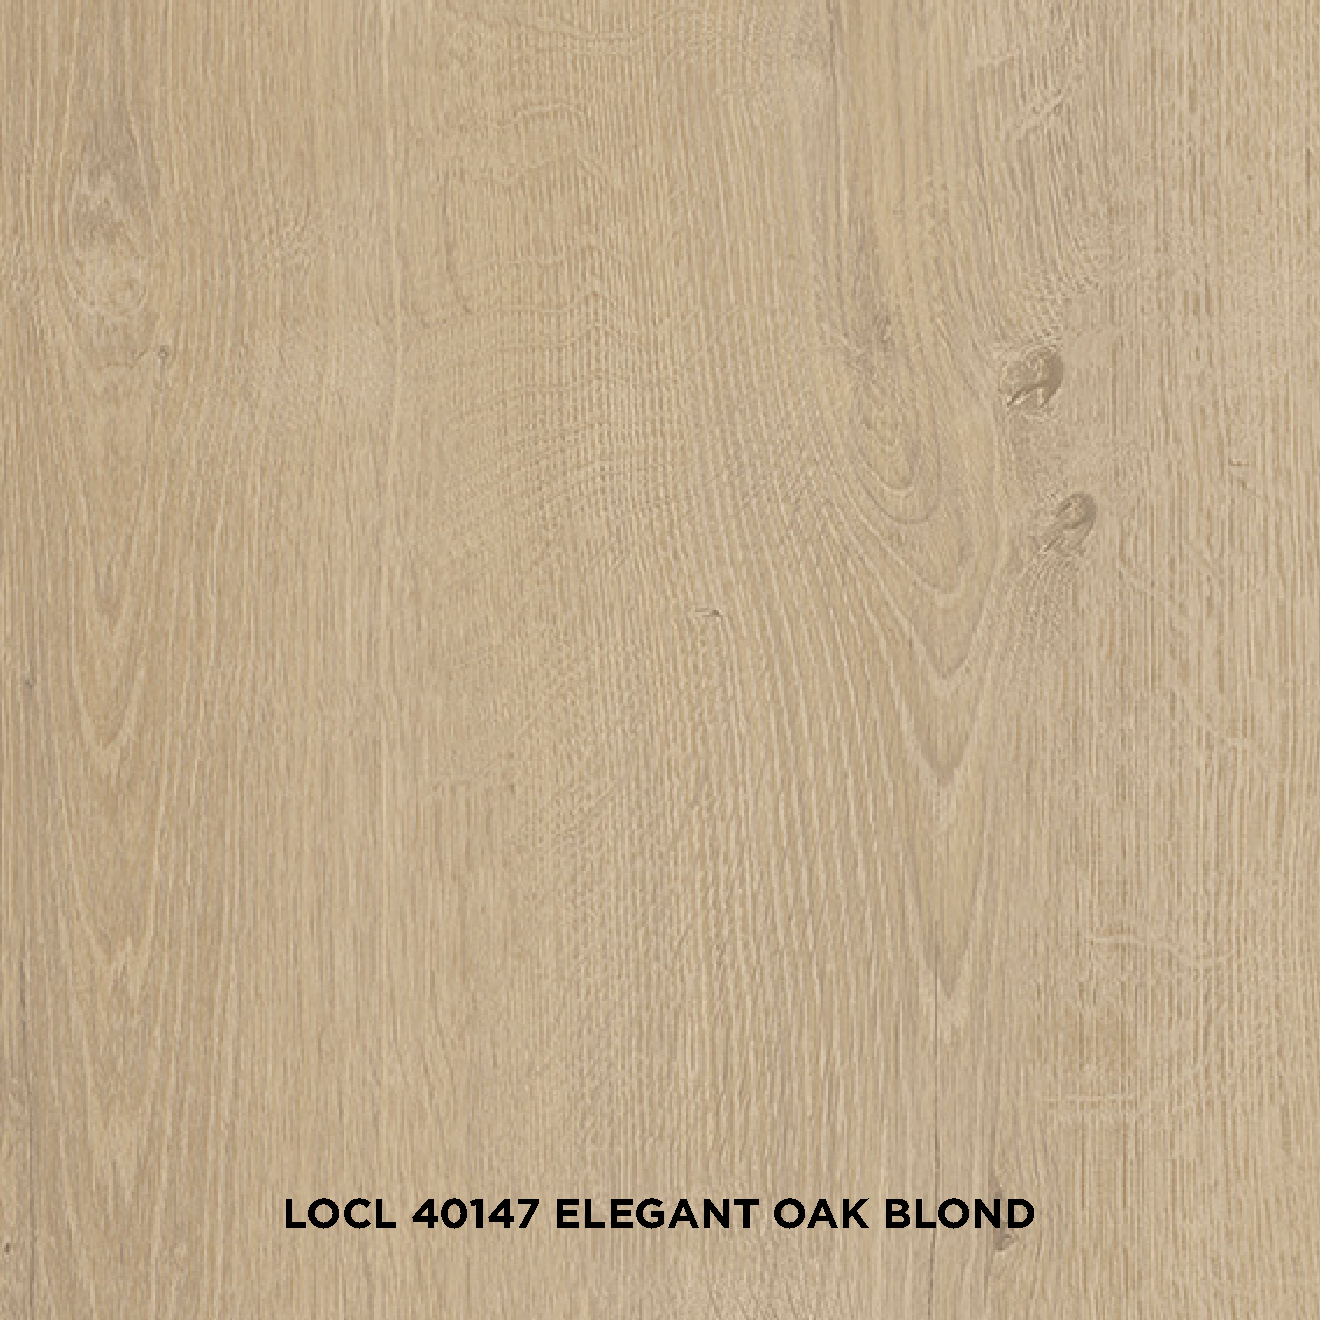 LOCL 40147 ELEGANT OAK BLOND